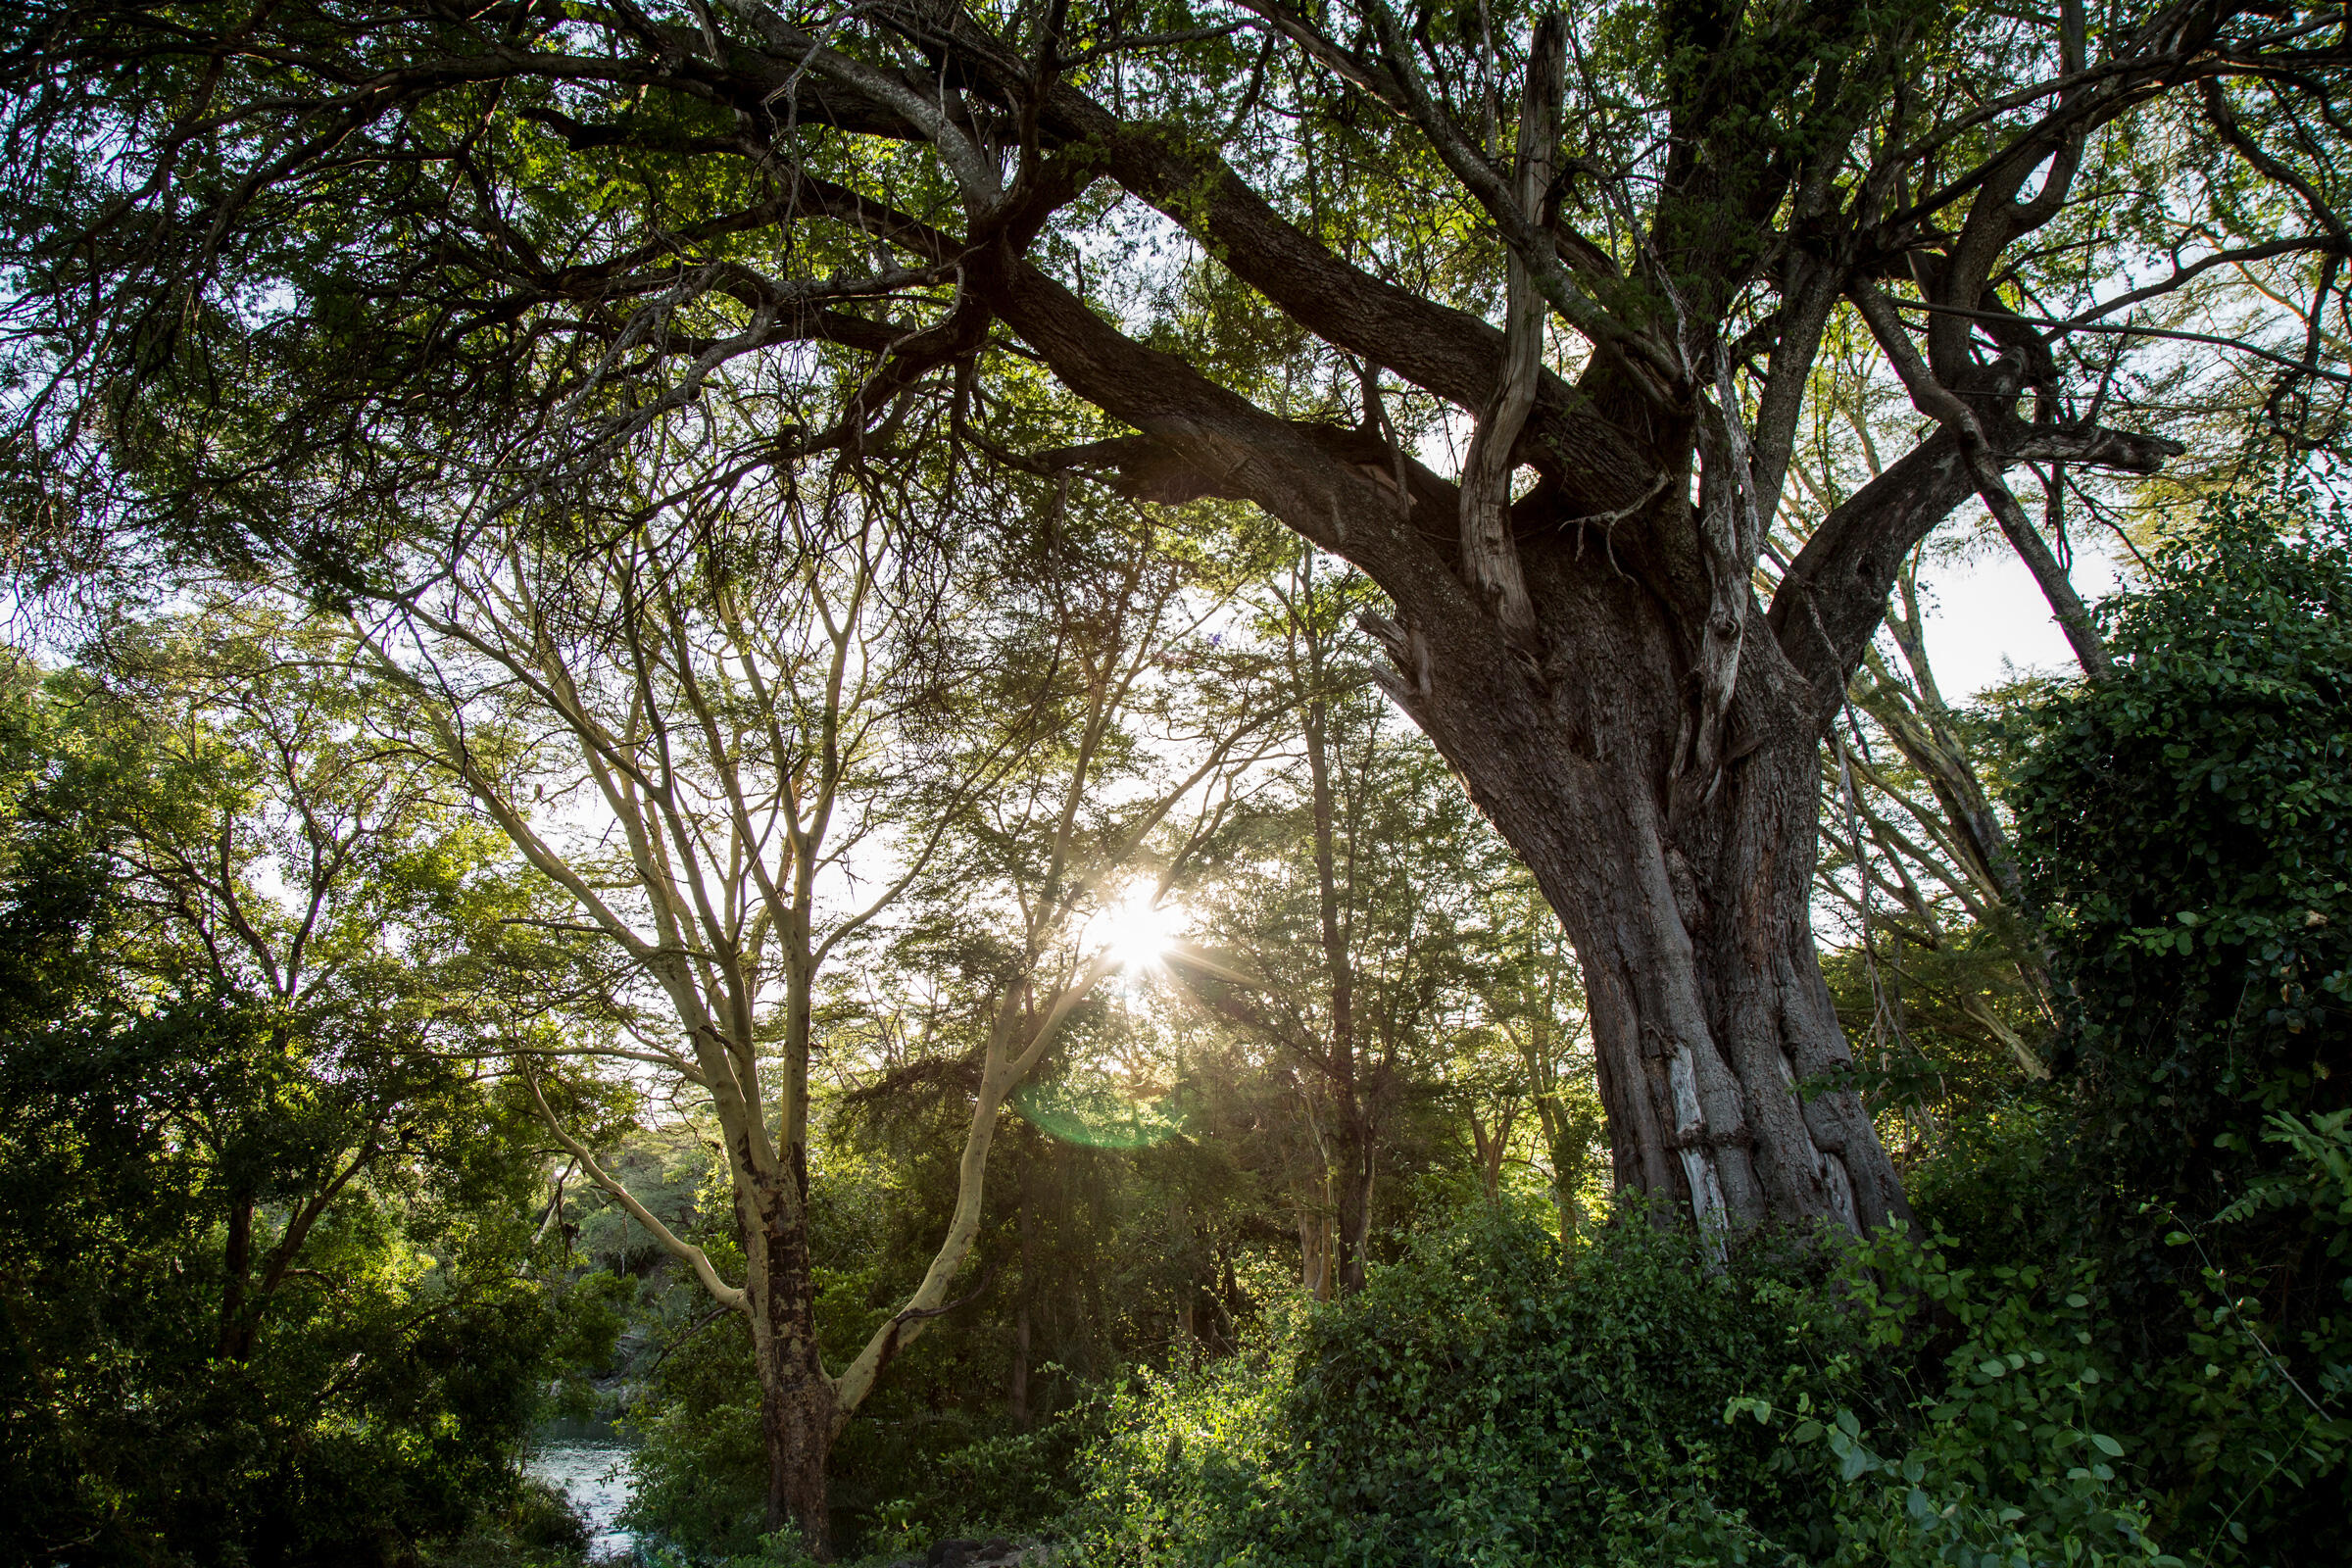 , Apple is helping launch a $200 million fund to restore forests – Source CNET Tech, iBSC Technologies - learning management services, LMS, Wordpress, CMS, Moodle, IT, Email, Web Hosting, Cloud Server,Cloud Computing